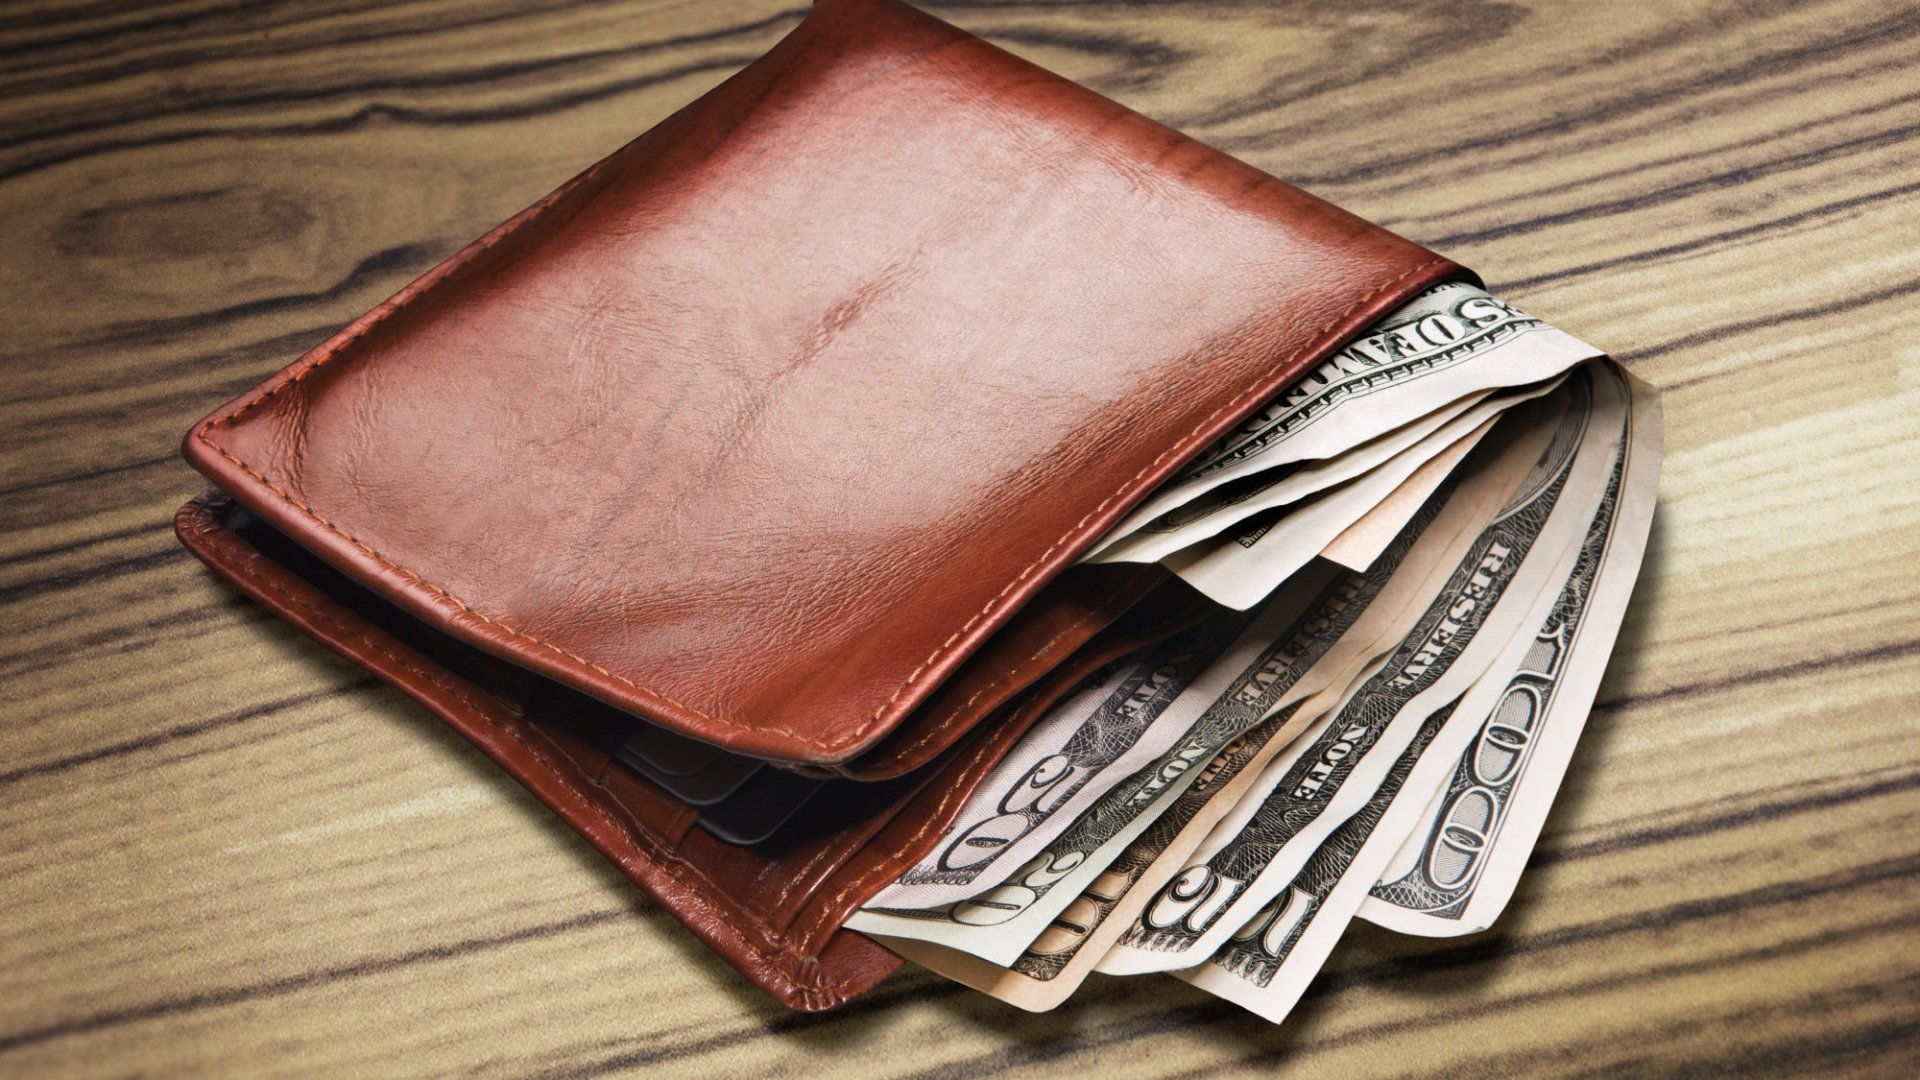 Mindfulness and Losing My Wallet